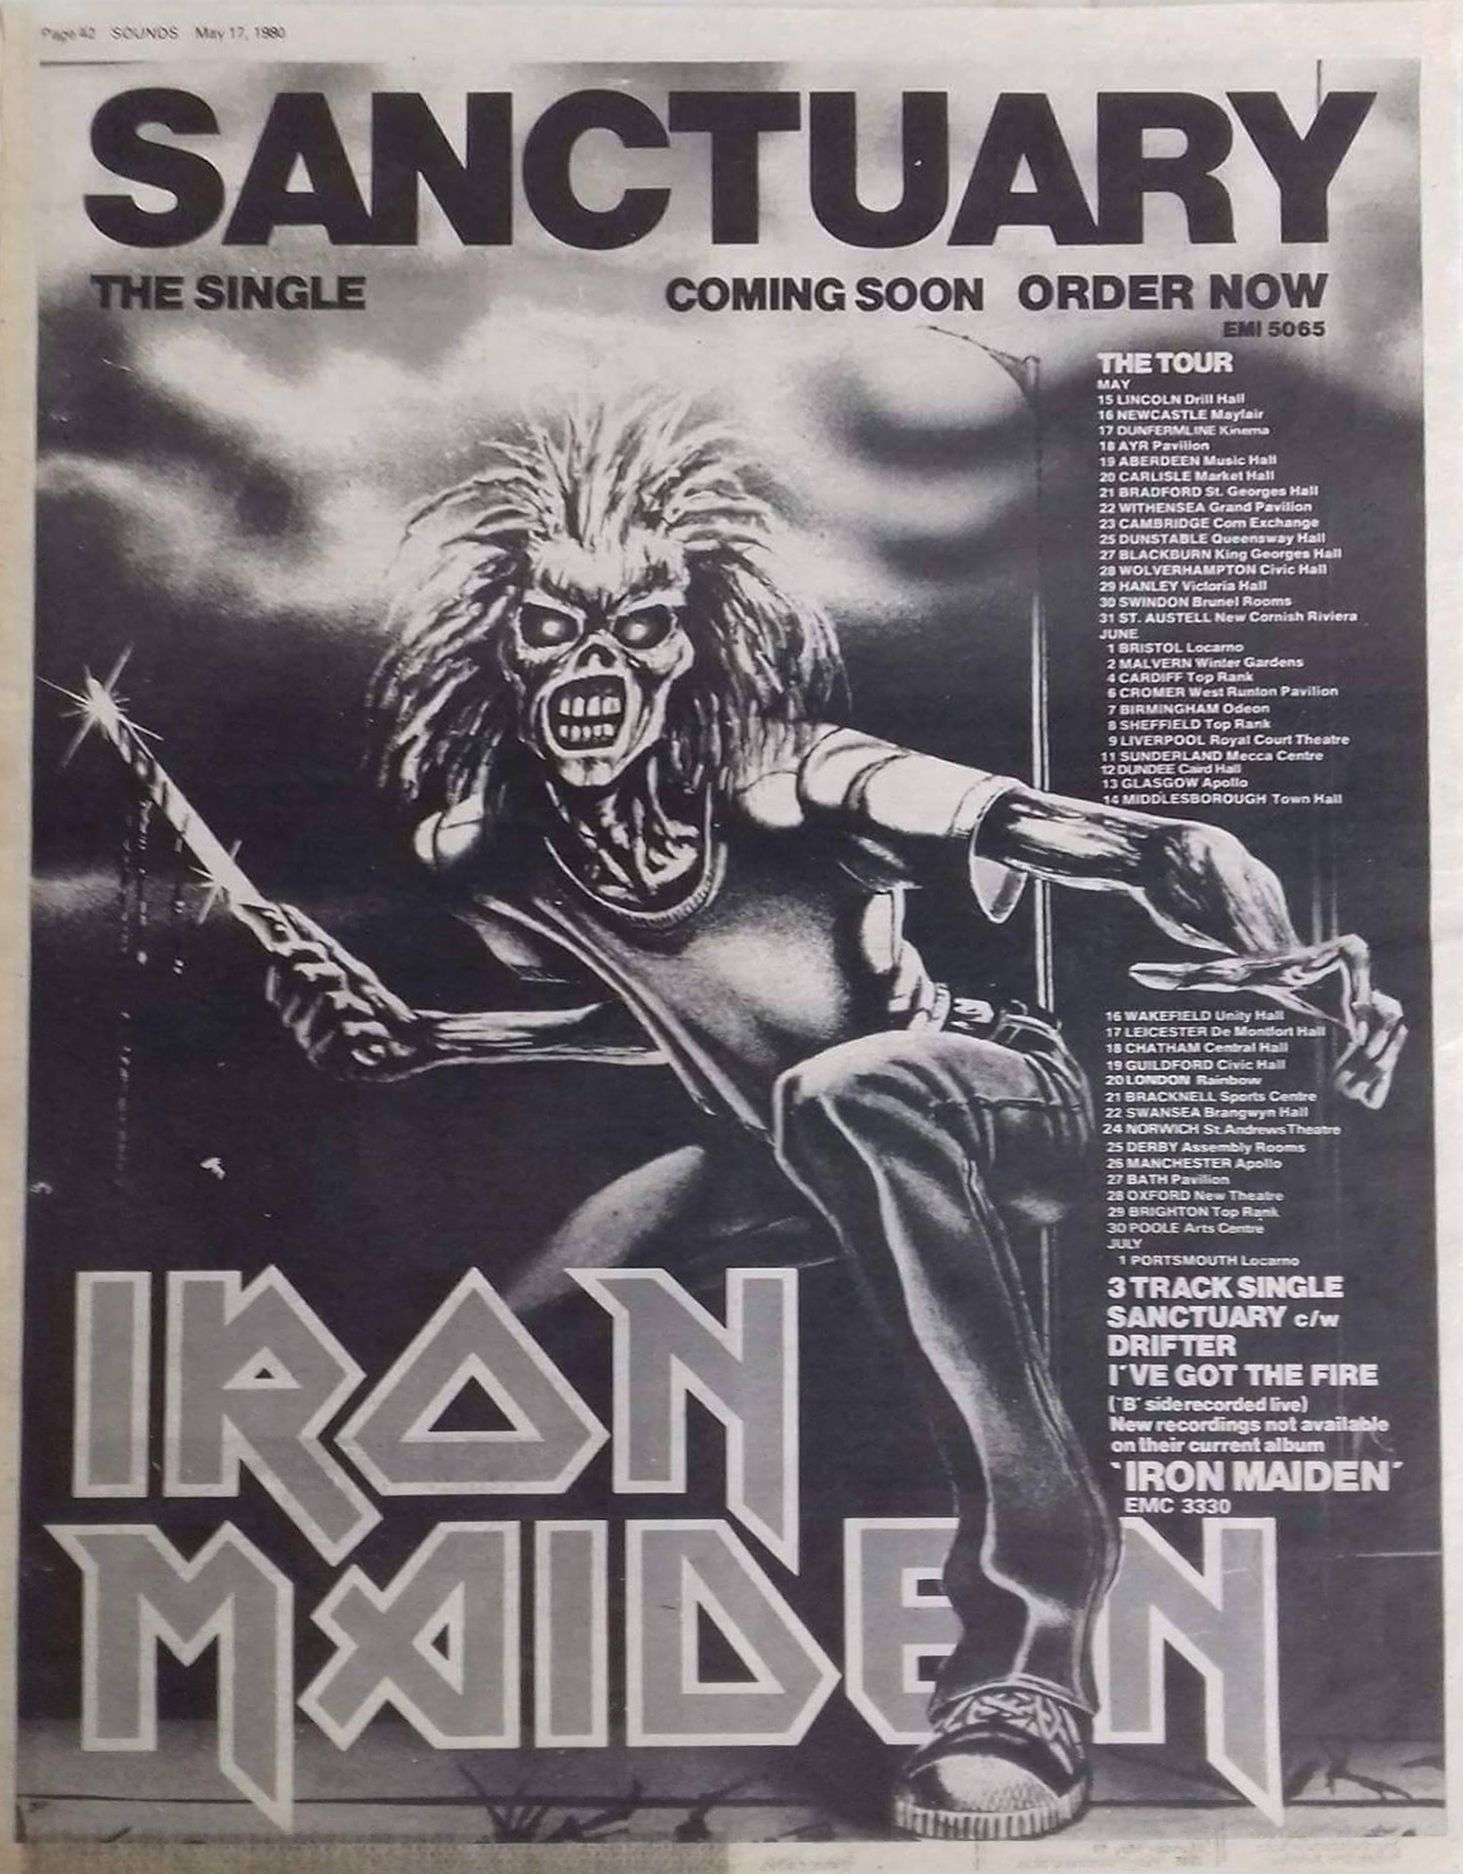 Pin by Eric B on music stuff in 2019 | Iron maiden band